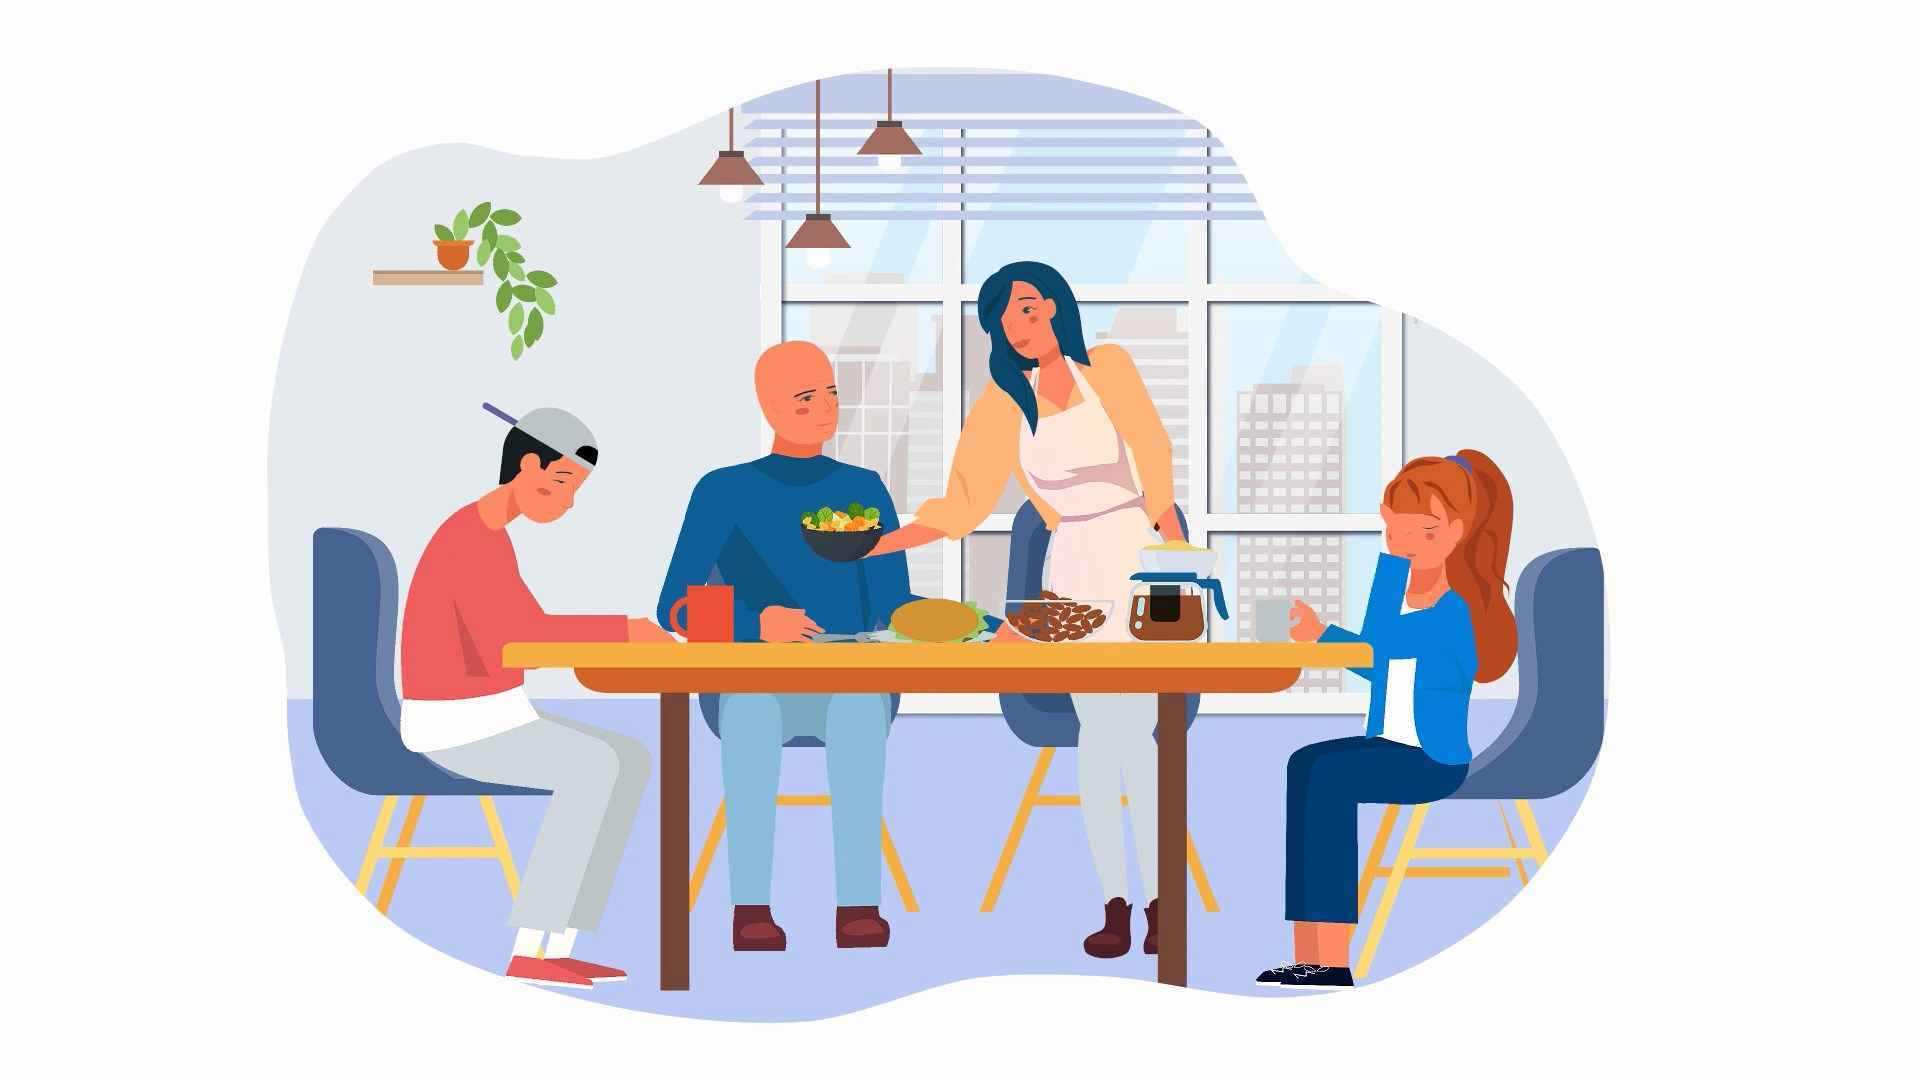 Wife serves food to husband - marketing animated video